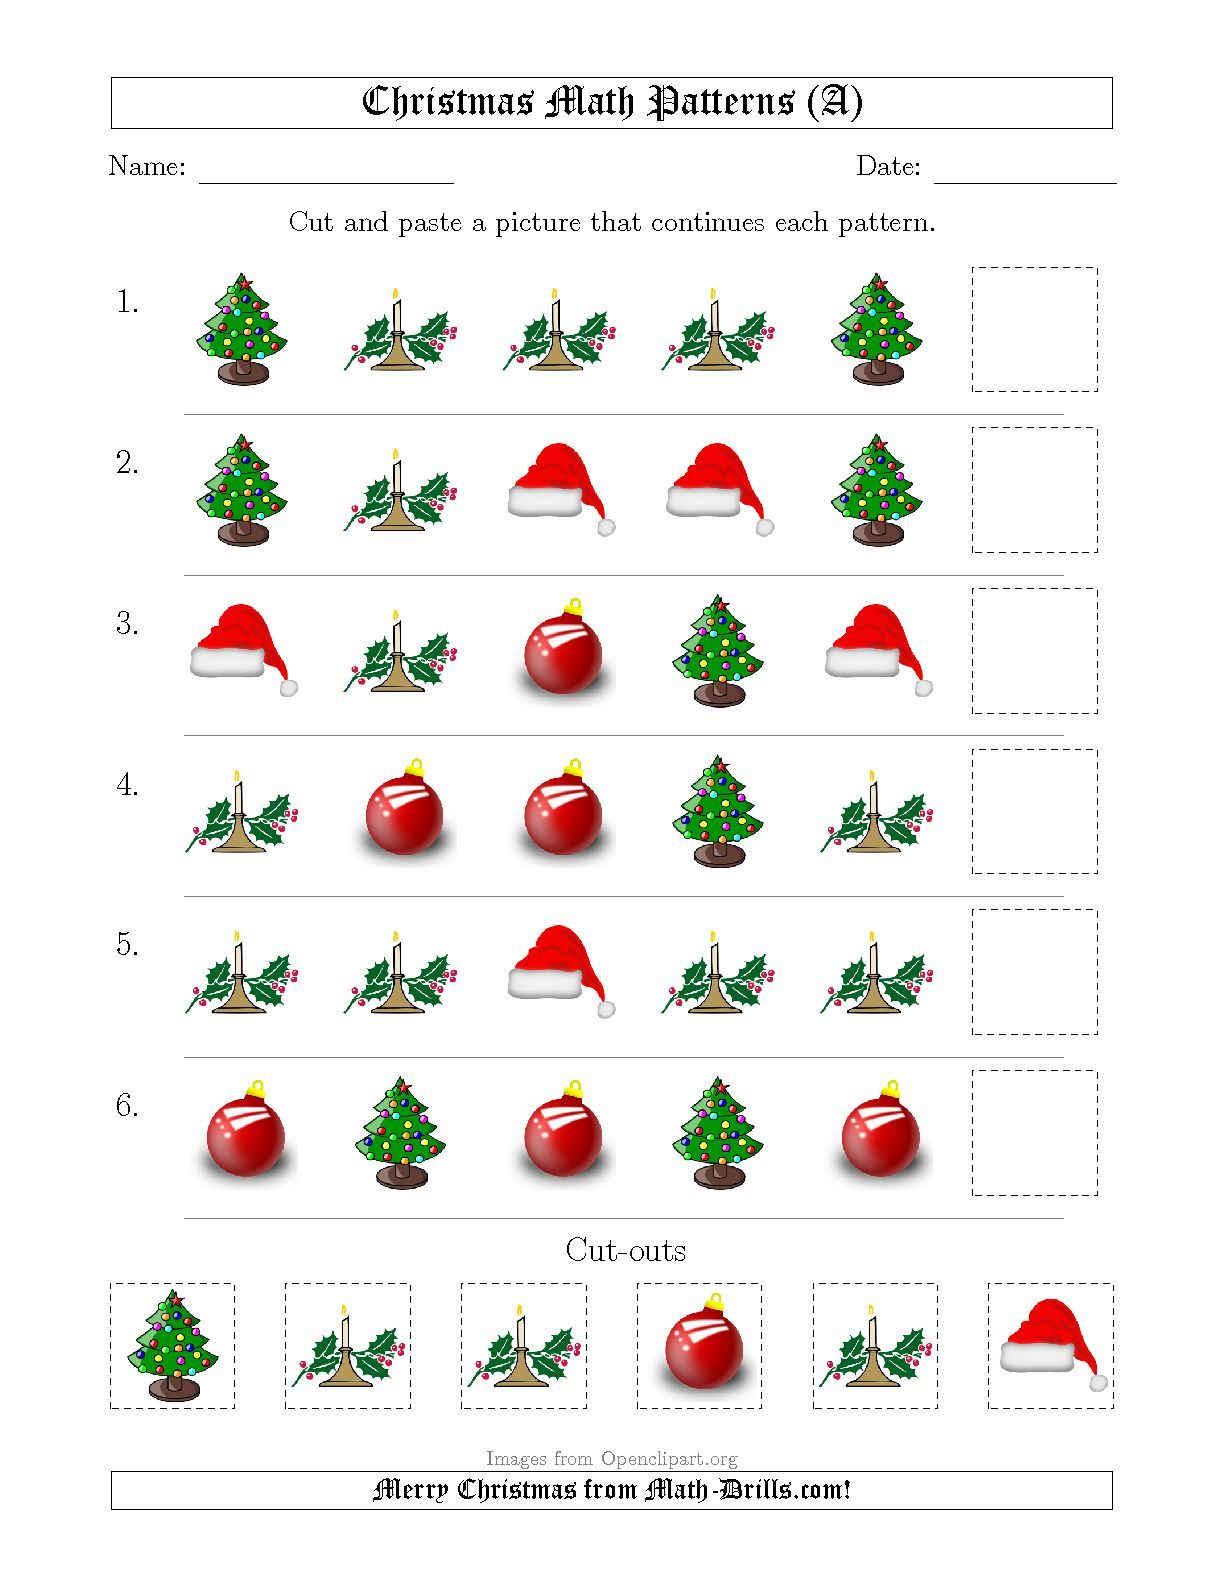 The Christmas Picture Patterns With Shape Attribute Only